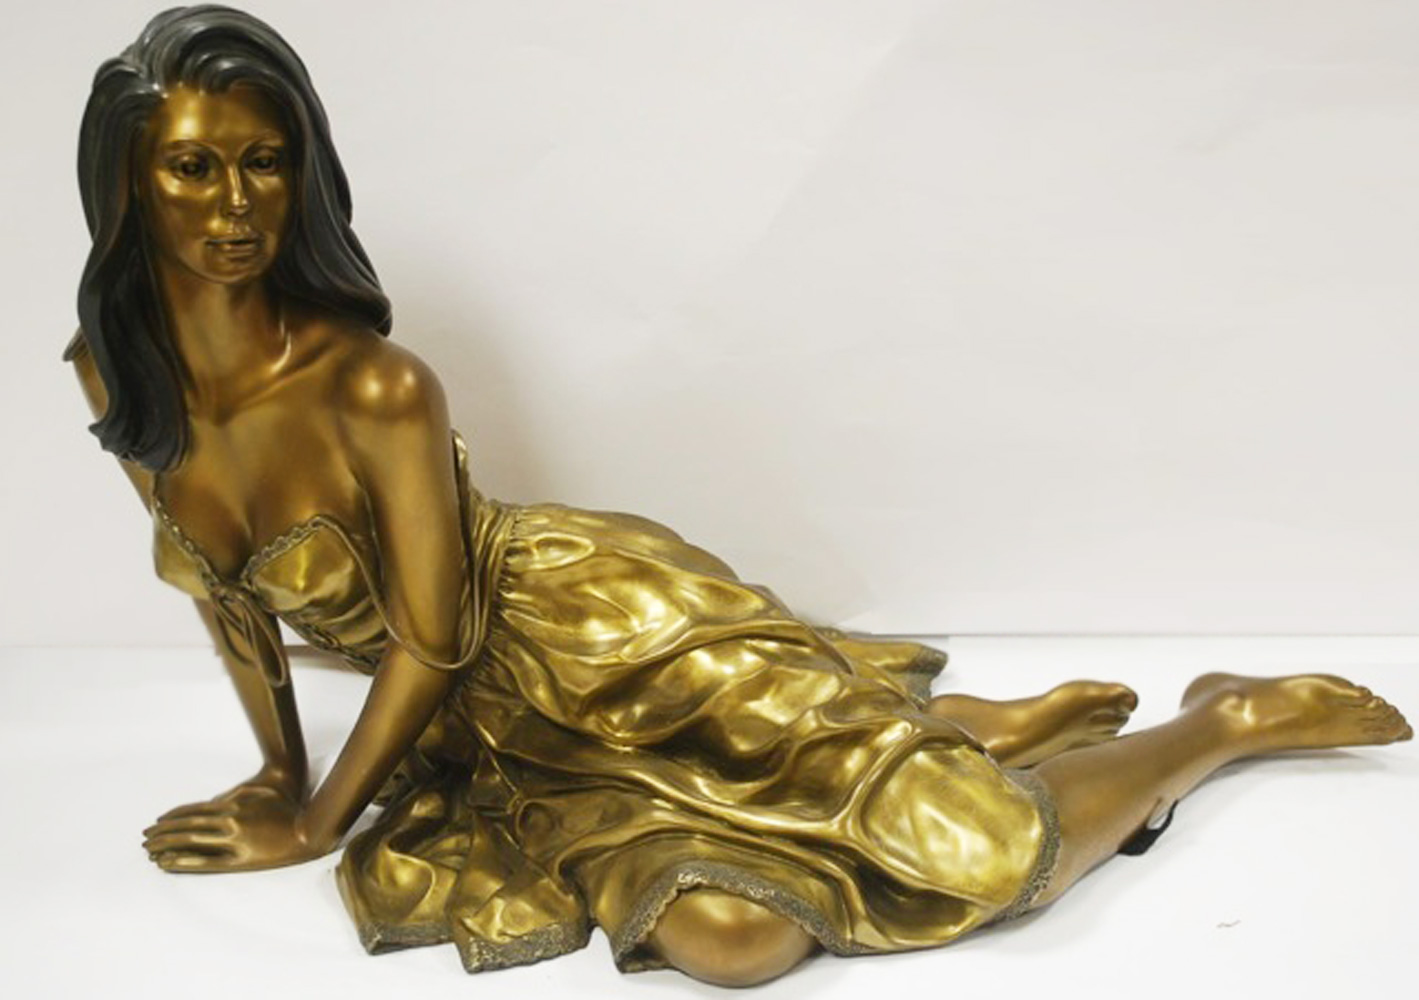 Tranquility Bronze Sculpture 1999 26x16